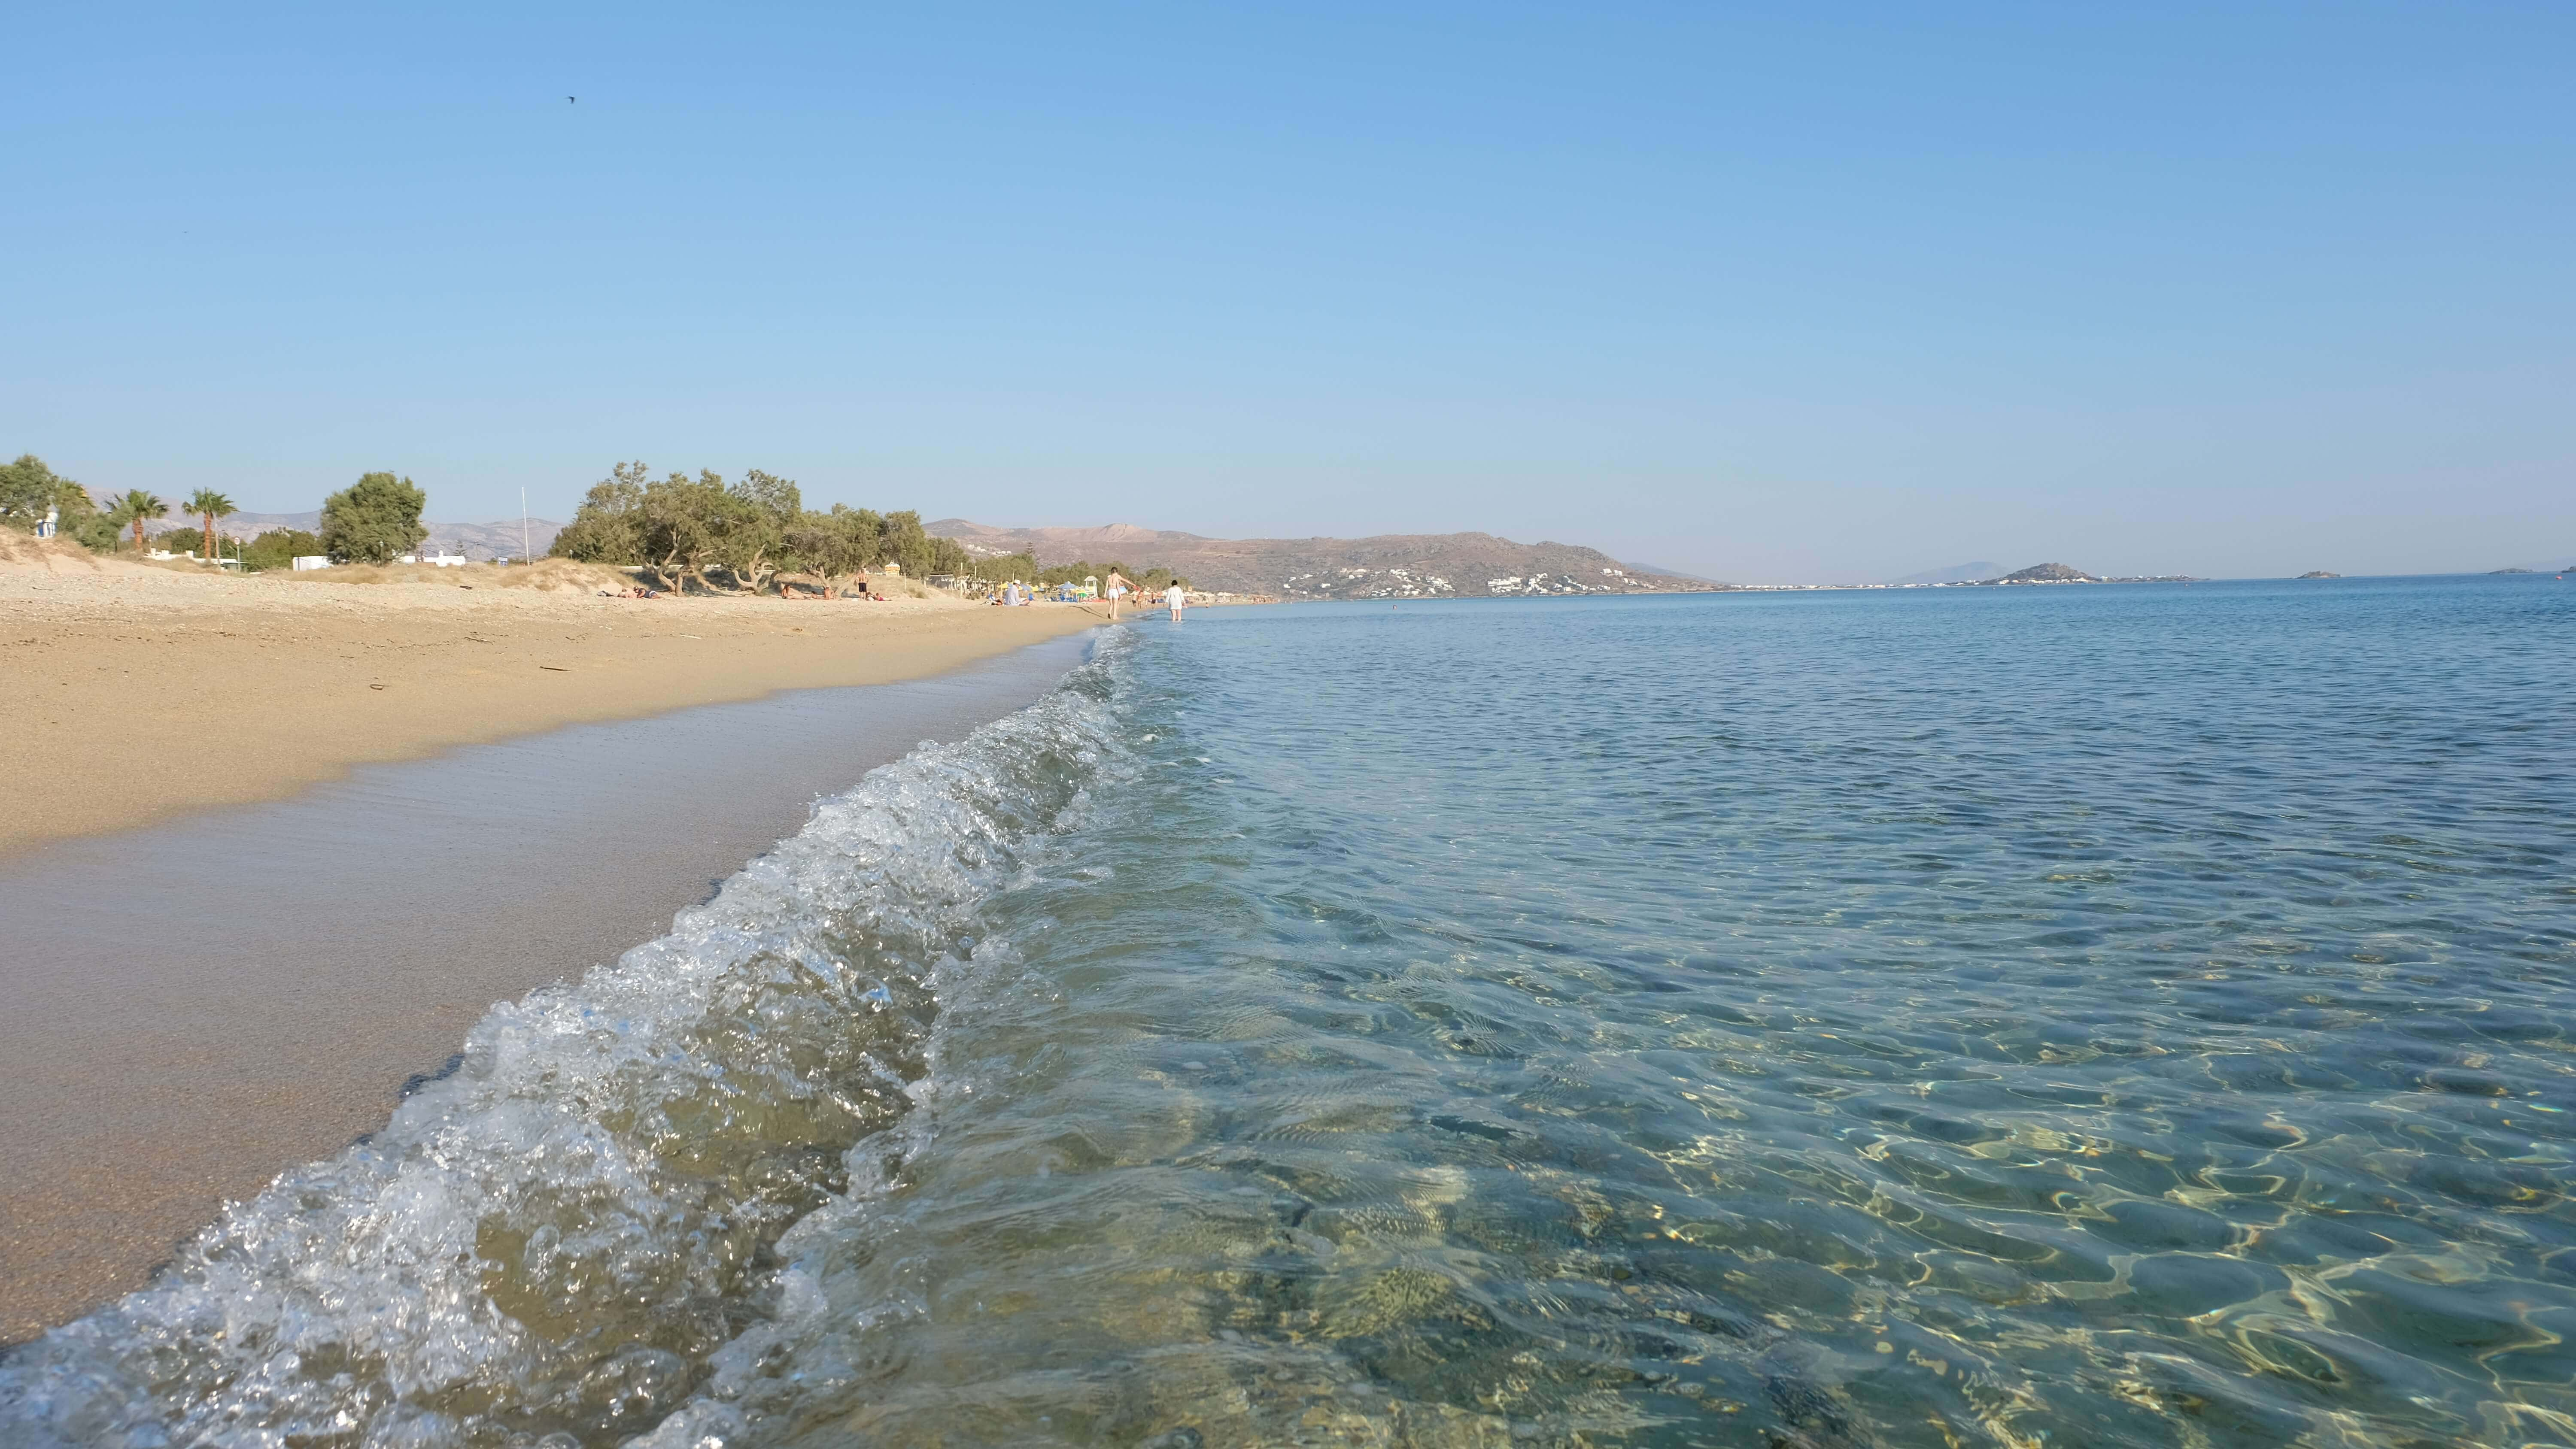 Things To Do In Naxos - 10 Amazing Places You Need To Explore - Plaka beach Naxos